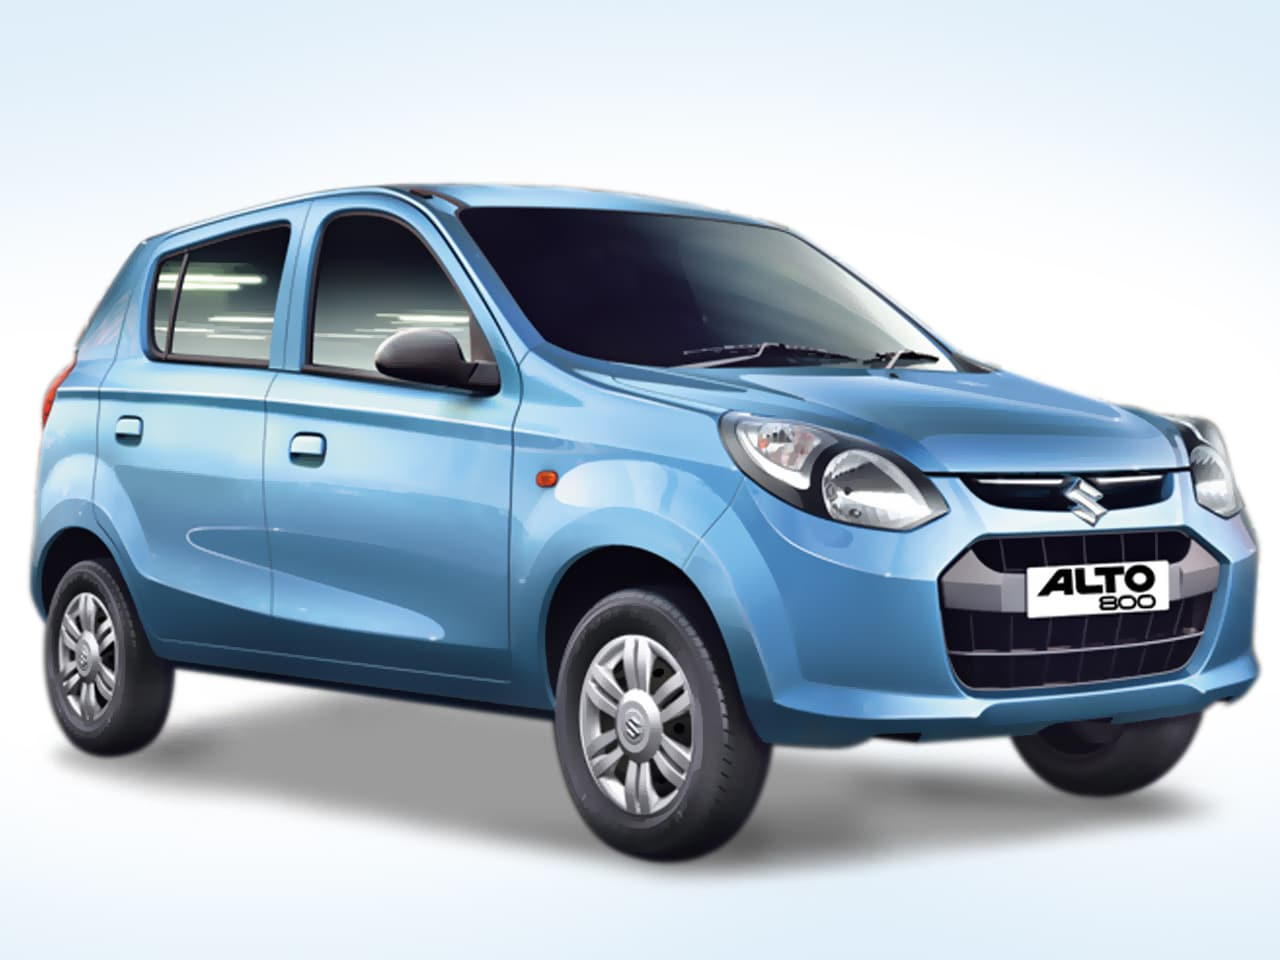 Maruti Suzuki Alto 800 Lxi Airbag Price In India Features Car Specifications Review